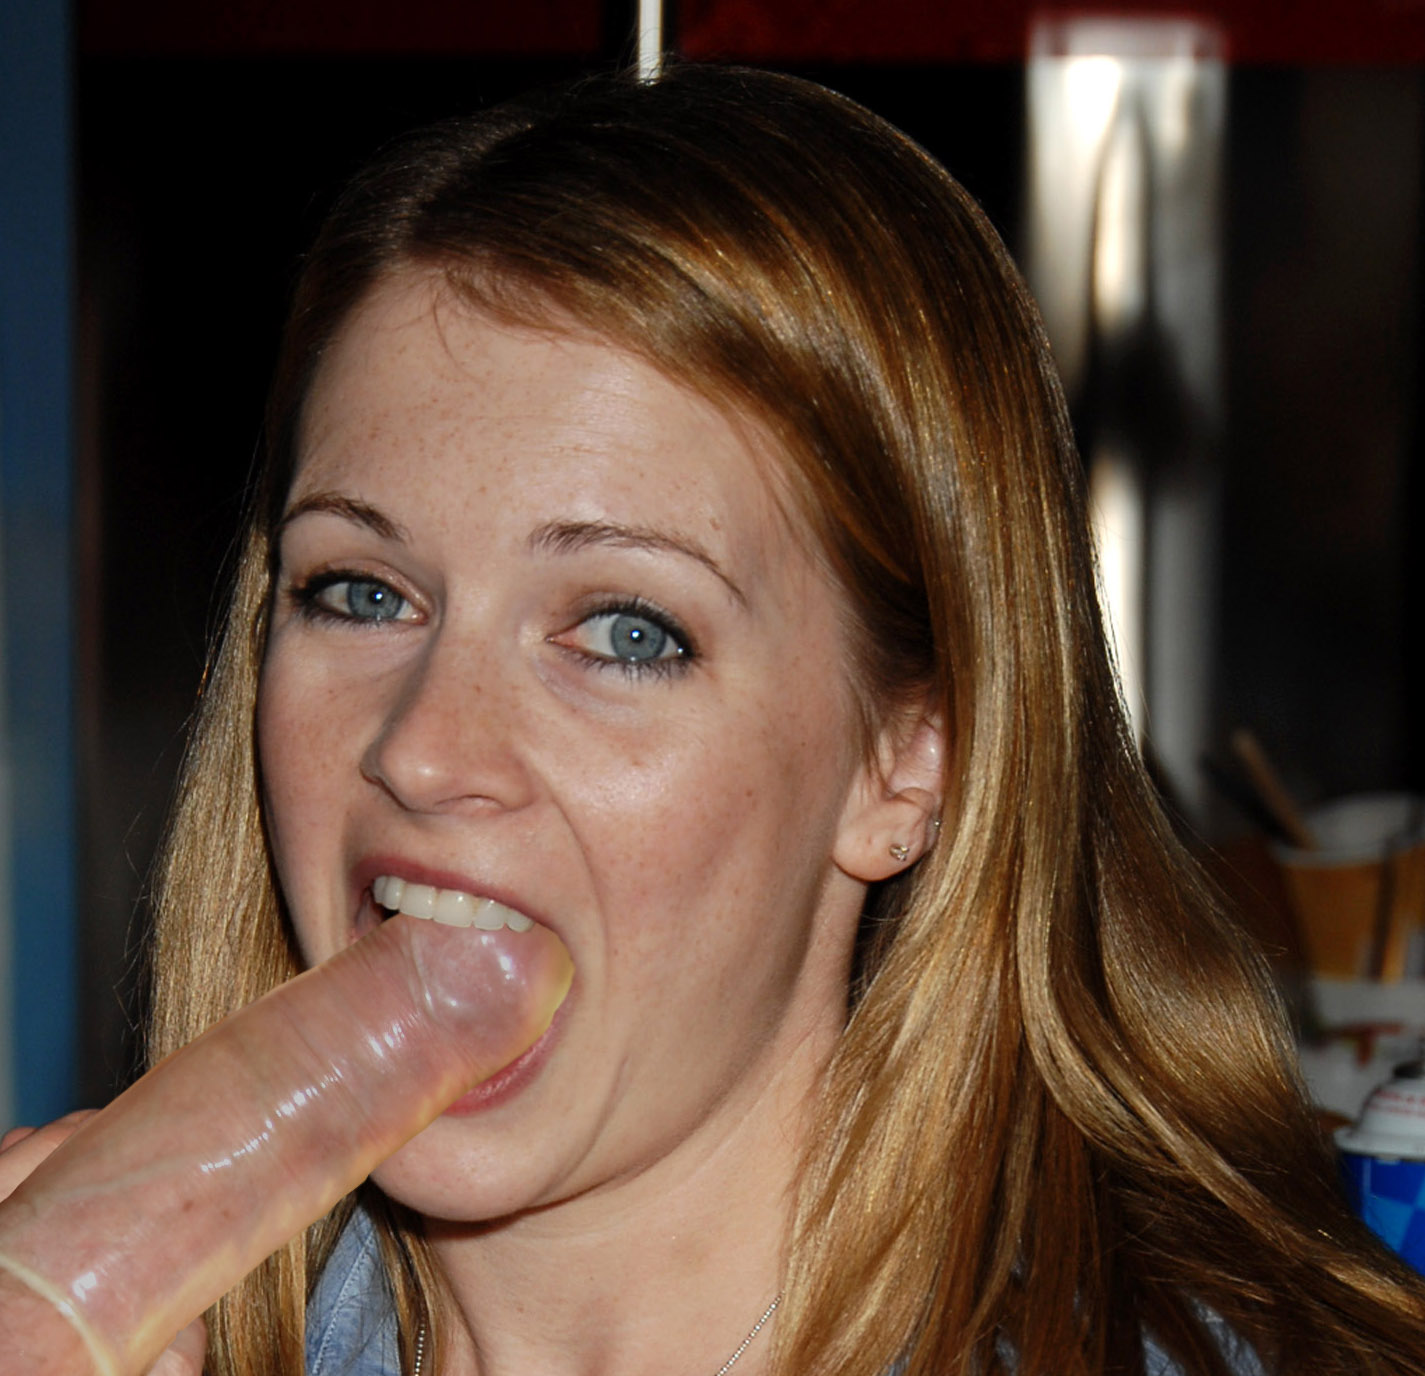 melissa joan hart Search - XVIDEOSCOM